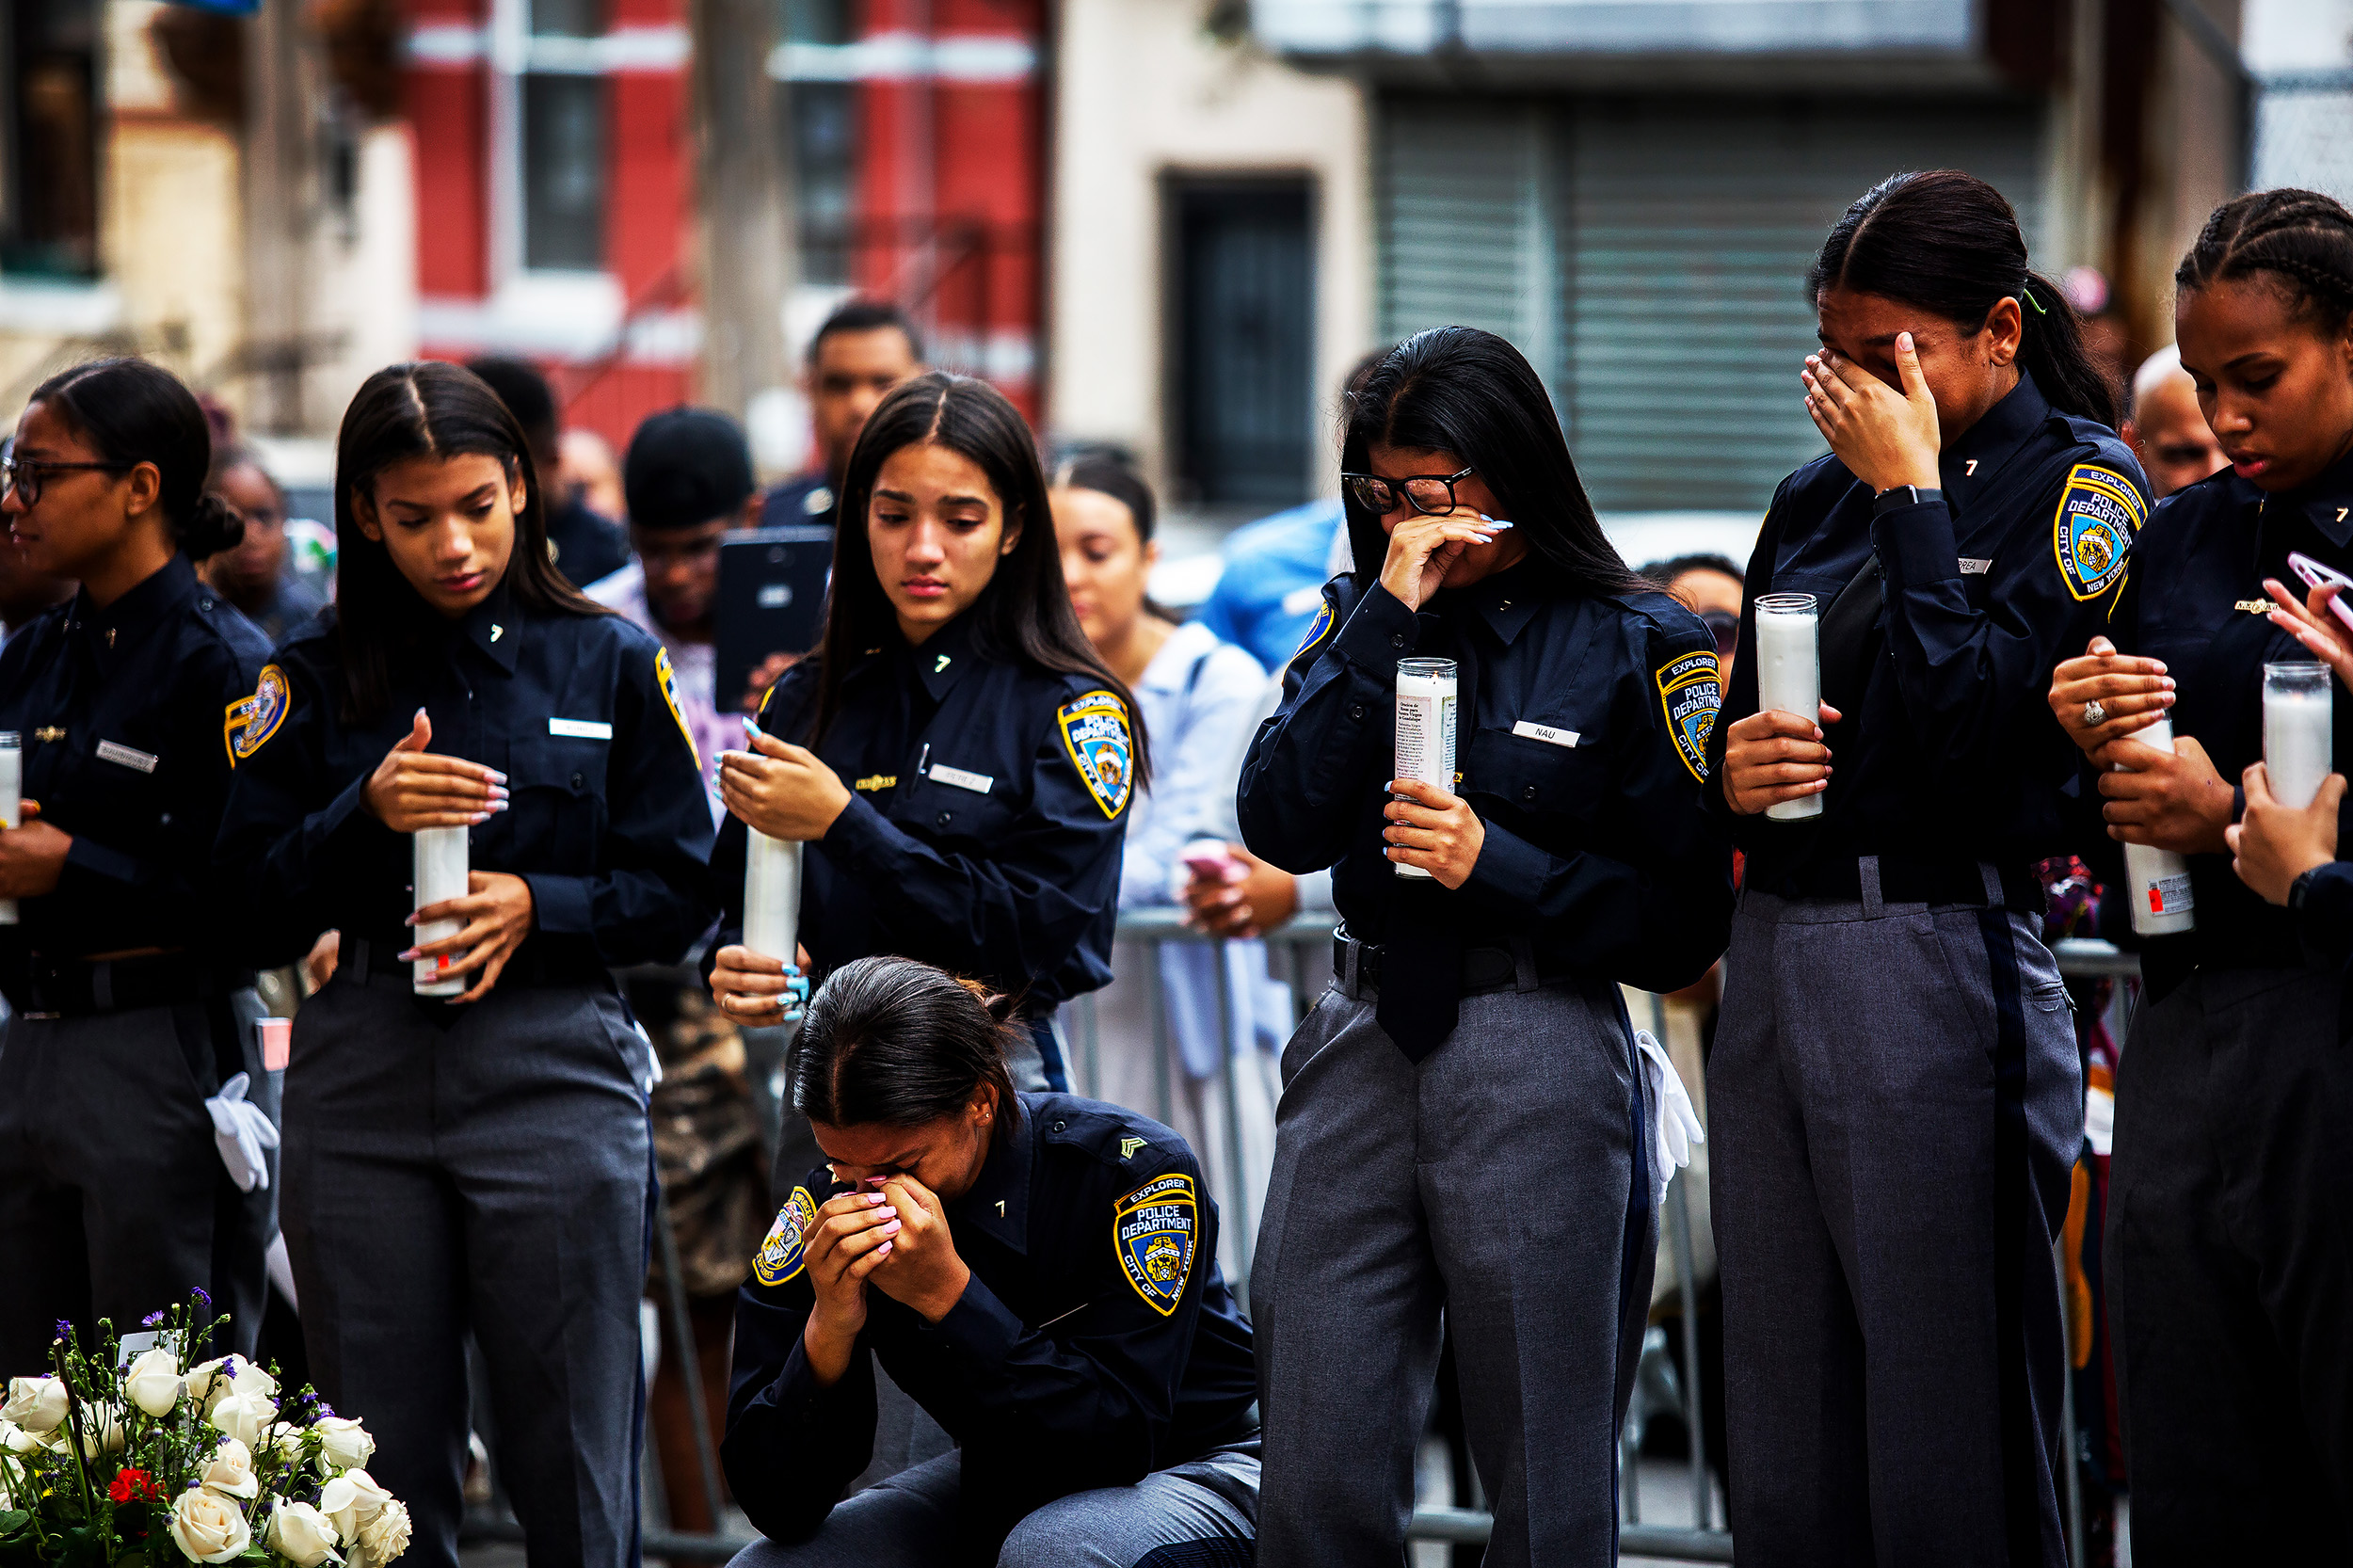 Members of the Law Enforcement Explorers program, a New York Police Department program for high school students, light candles at the makeshift memorial space for Lesandro Guzman-Feliz in the Bronx on June 27, 2018. Hundreds attended the funeral of the 15-year-old, known as Junior, whose fatal stabbing was caught on video and stunned the city.